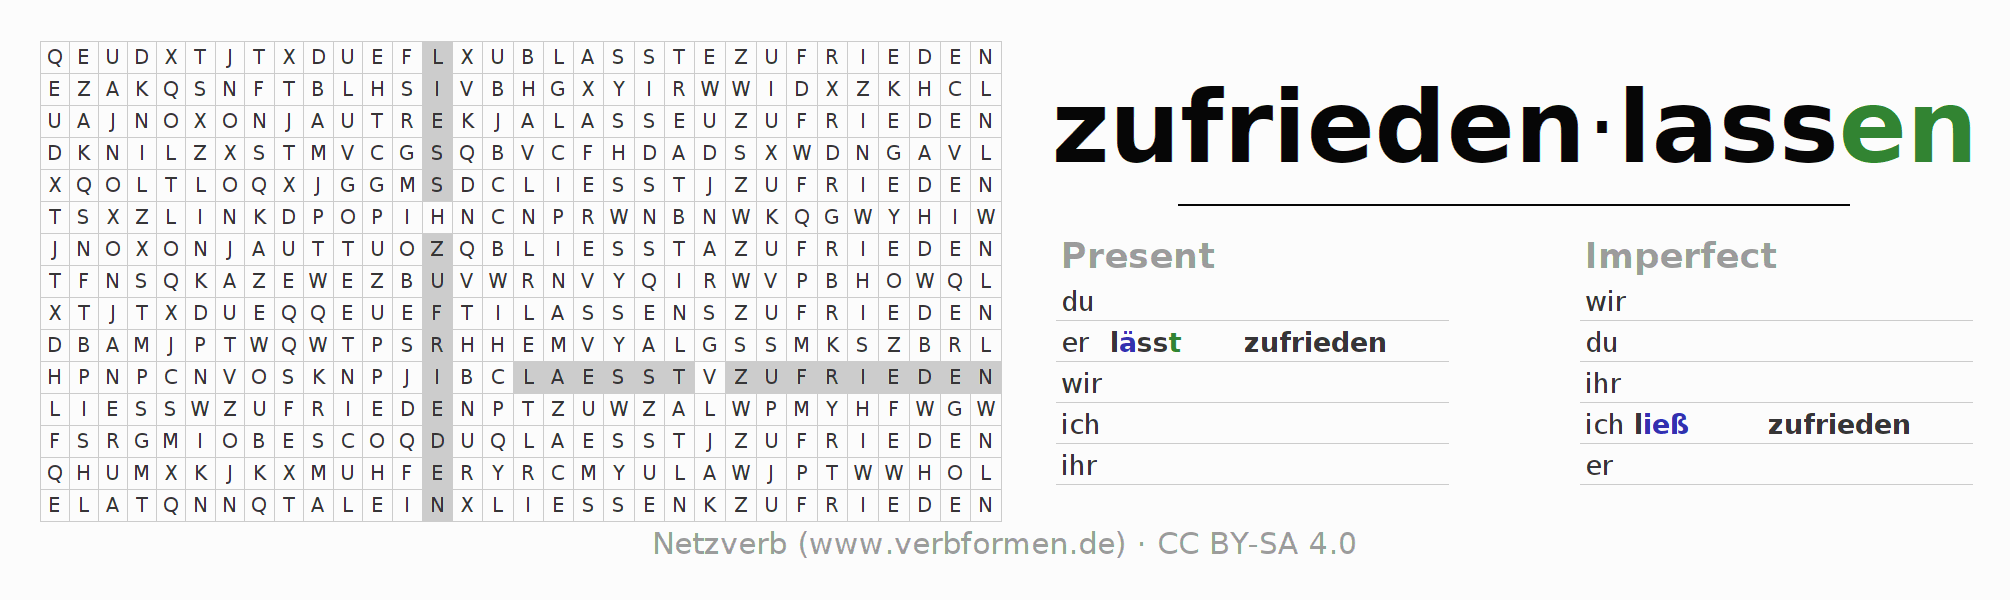 Word search puzzle for the conjugation of the verb zufriedenlassen